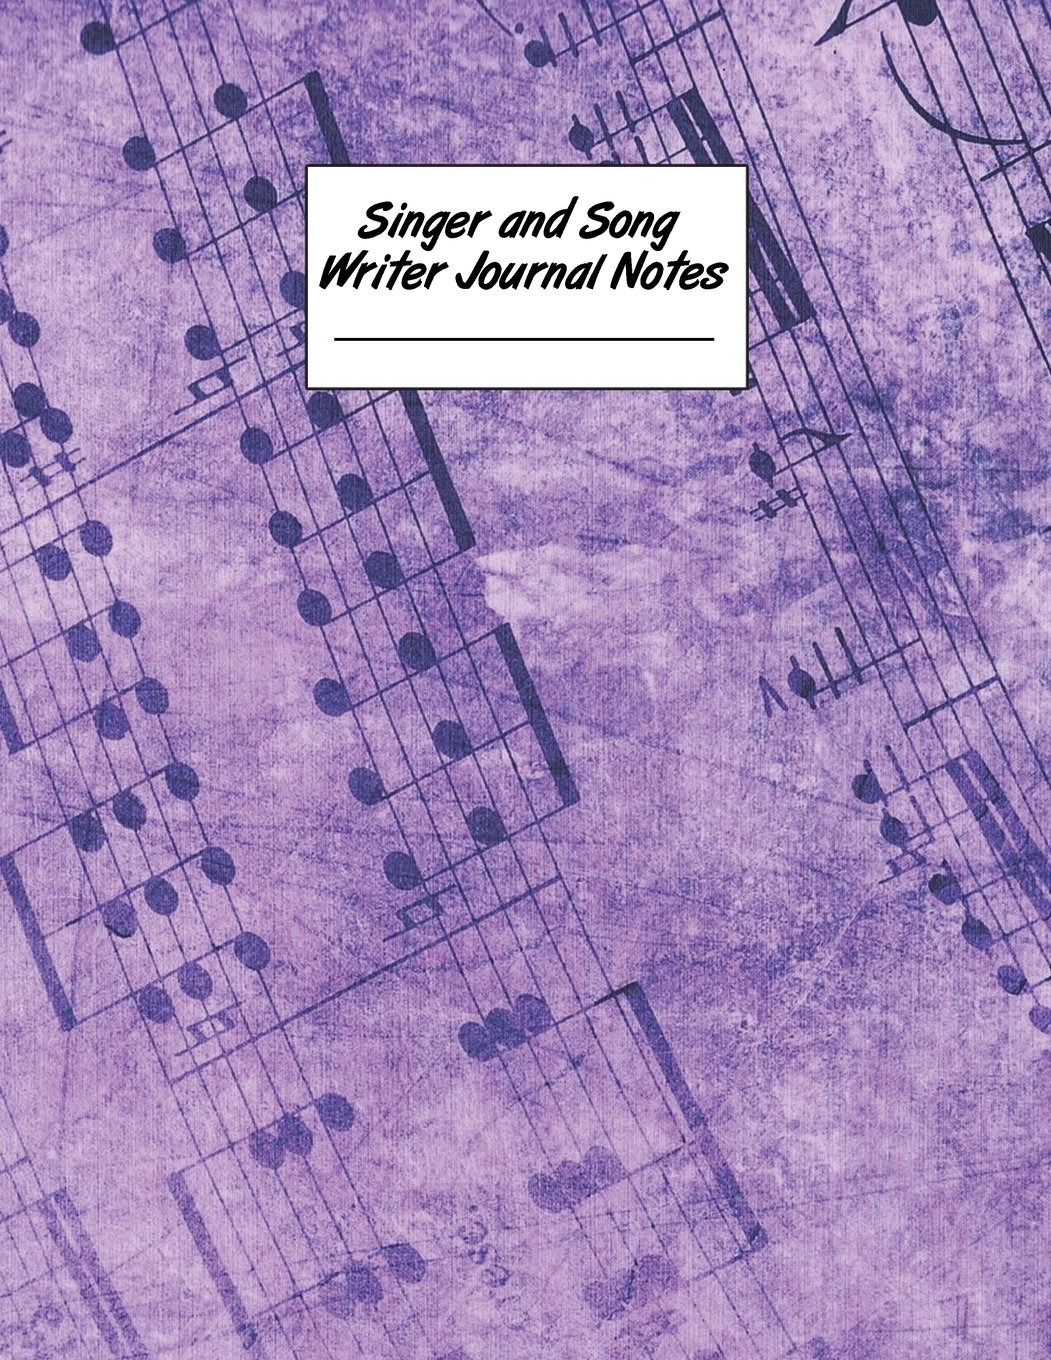 Singer and Song Writer Journal Notes: Guitar Tabs 8.5 x 11 Sheet Music and Lined Staff Paper Notebook, Appreciation Gift, Note Journal or Musical ... Birthday, Christmas or Gratitude Gift PDF